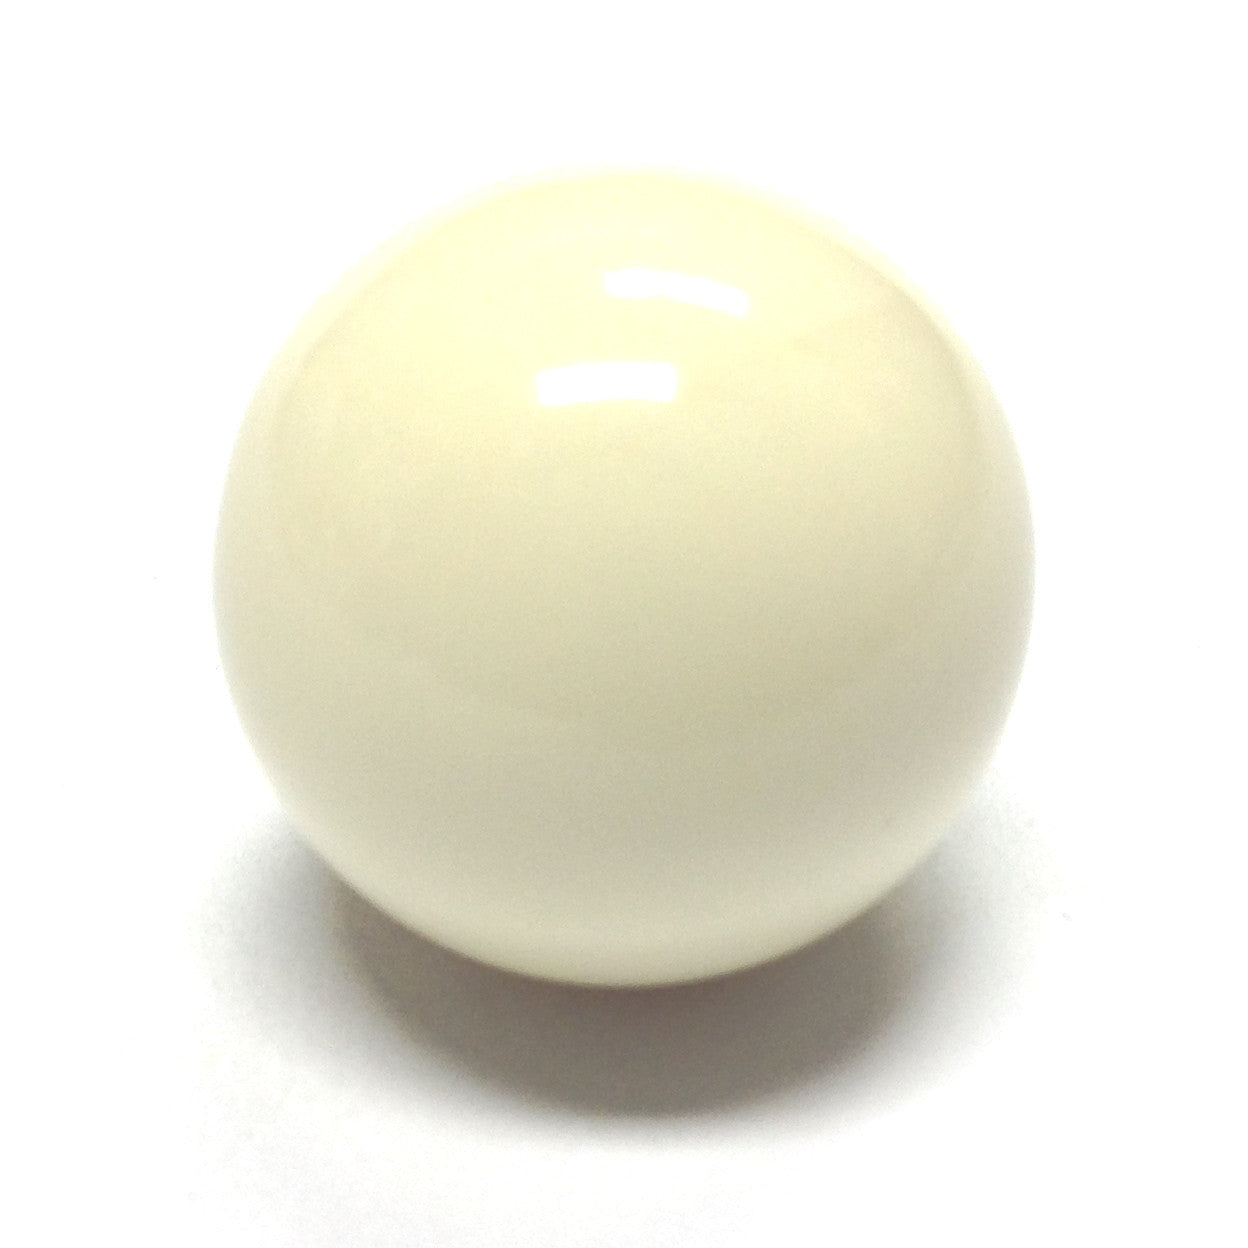 10MM Ivory Acrylic Plastic Bead (200 pieces)